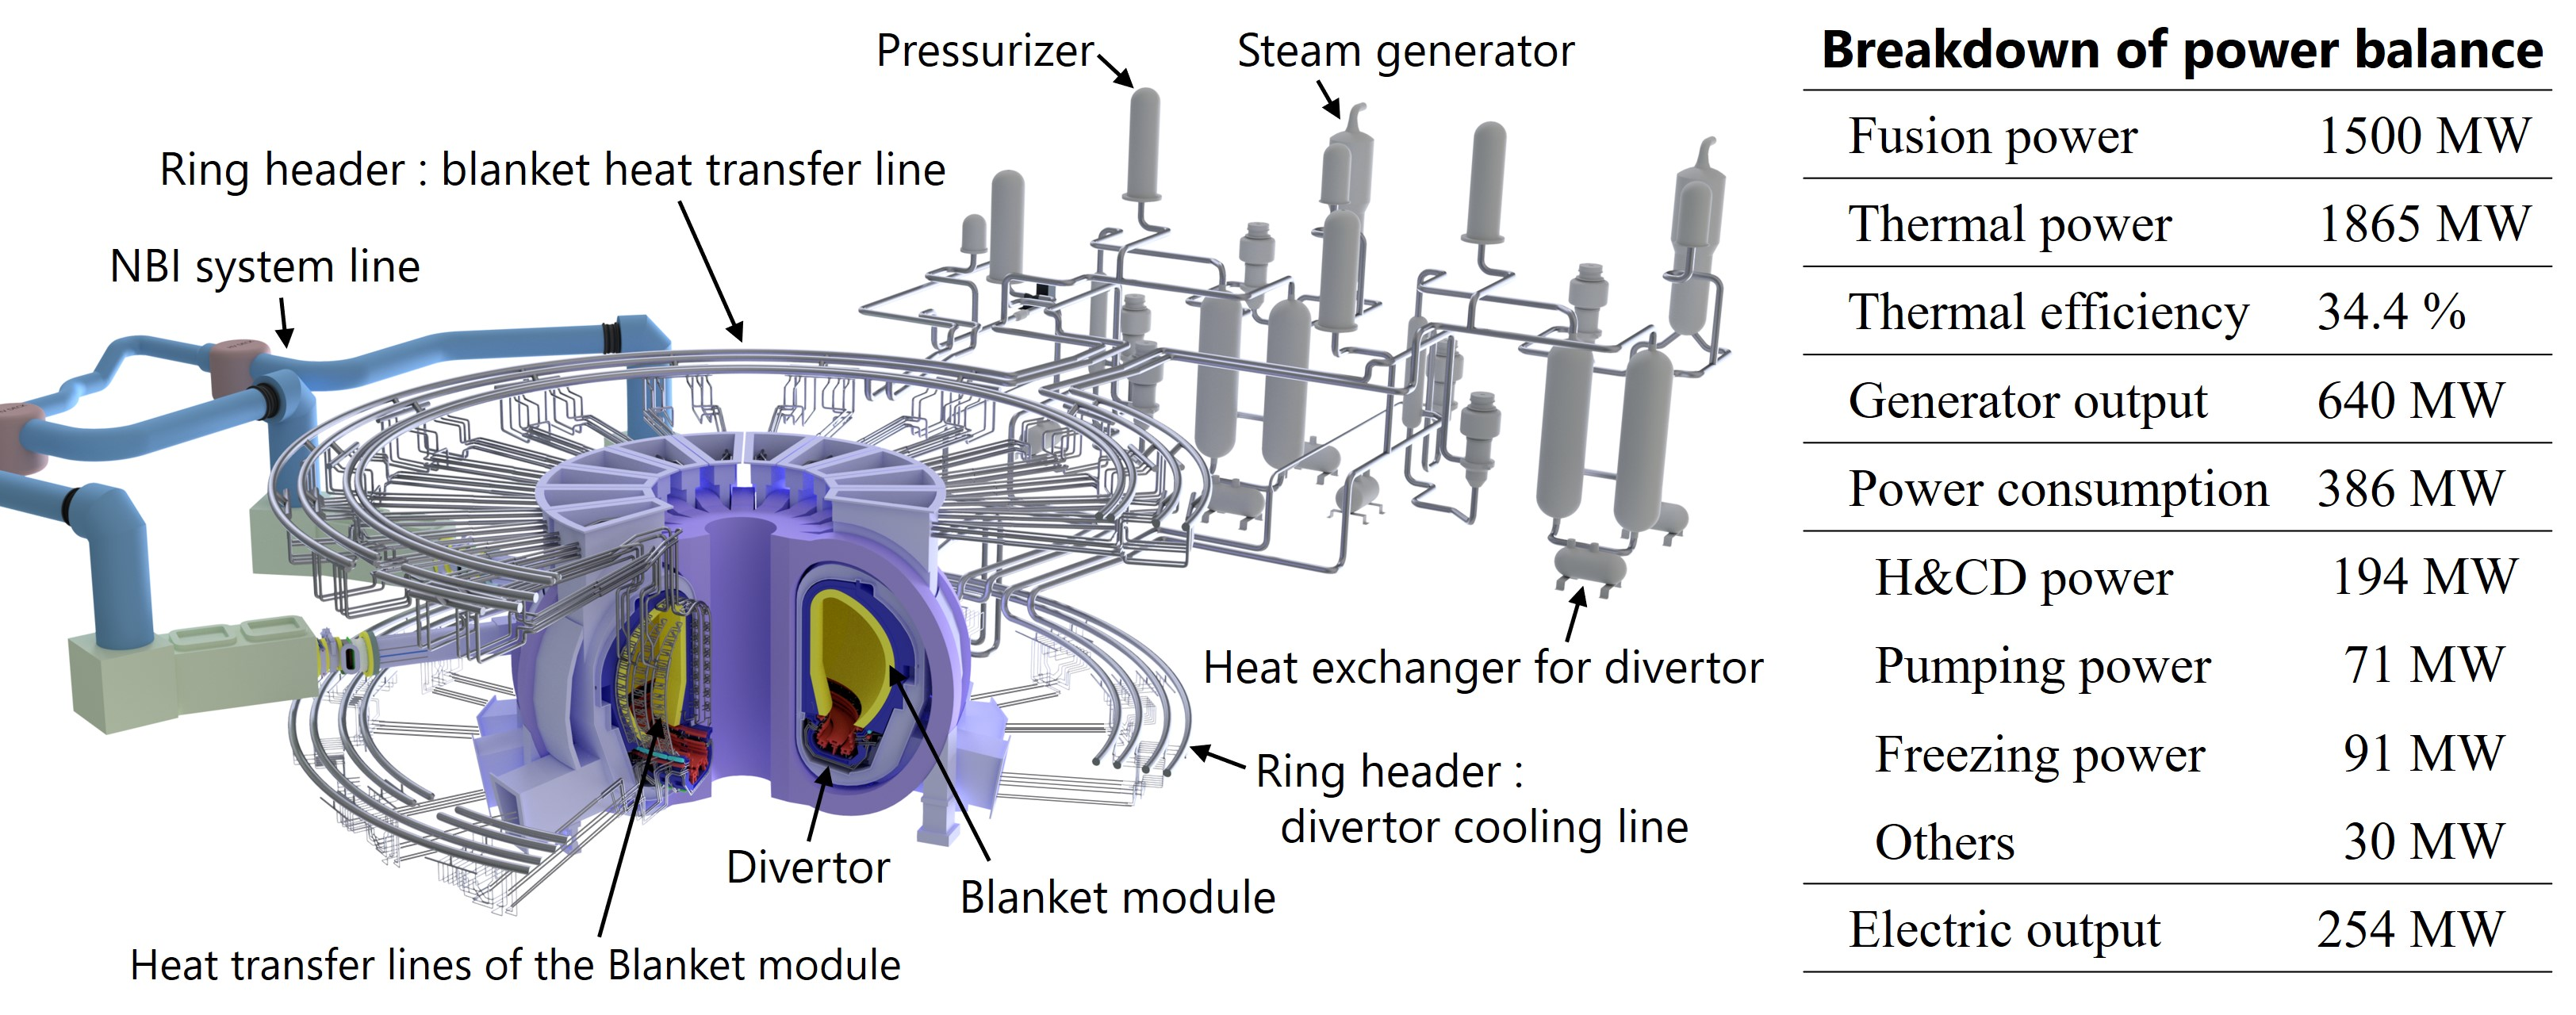 The primary heat transfer system and the breakdown of the power balance of JA DEMO plant.